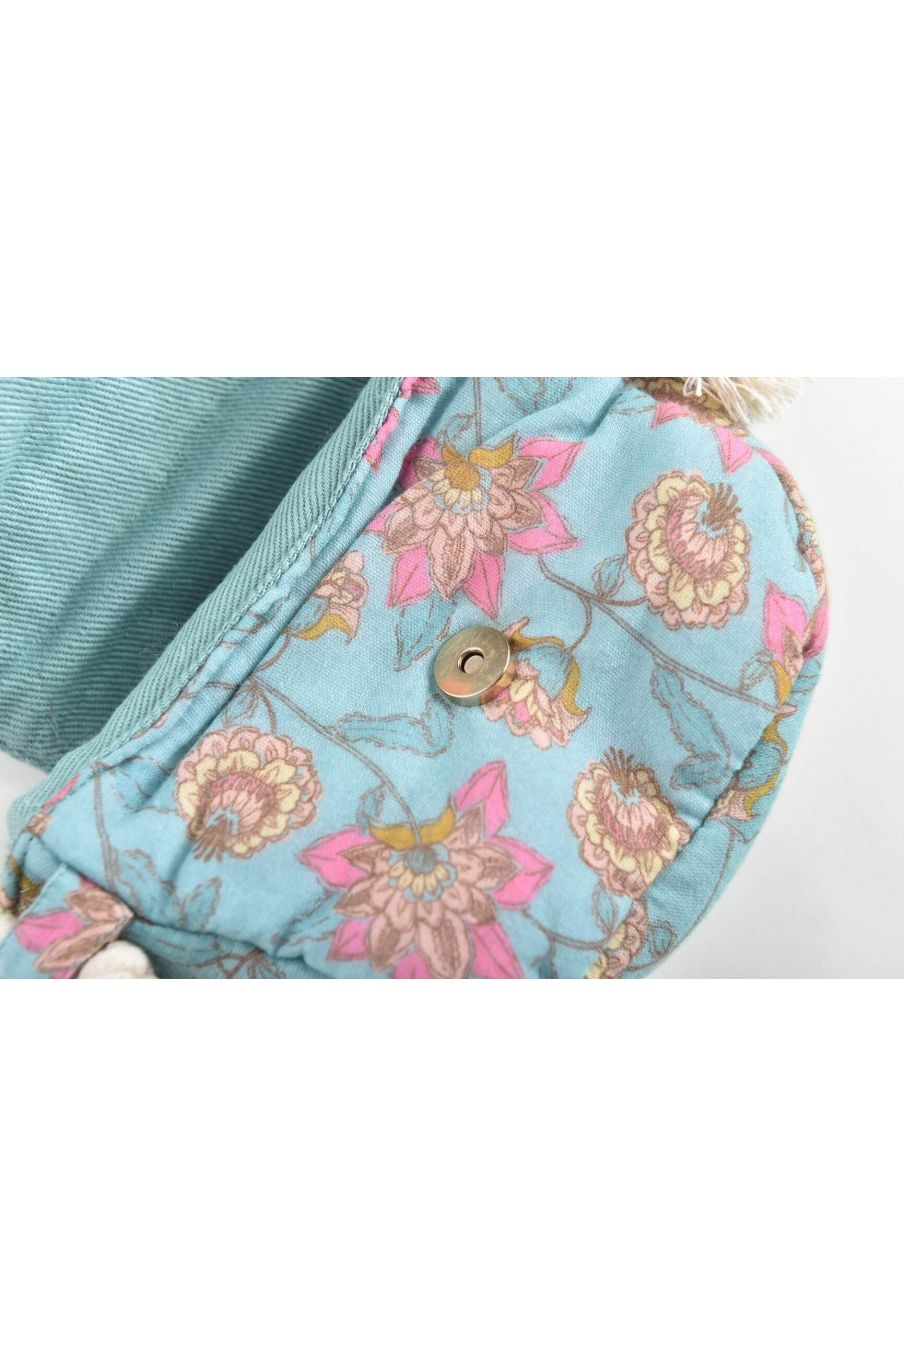 boheme chic vintage sac fille poppy turquoise flowers